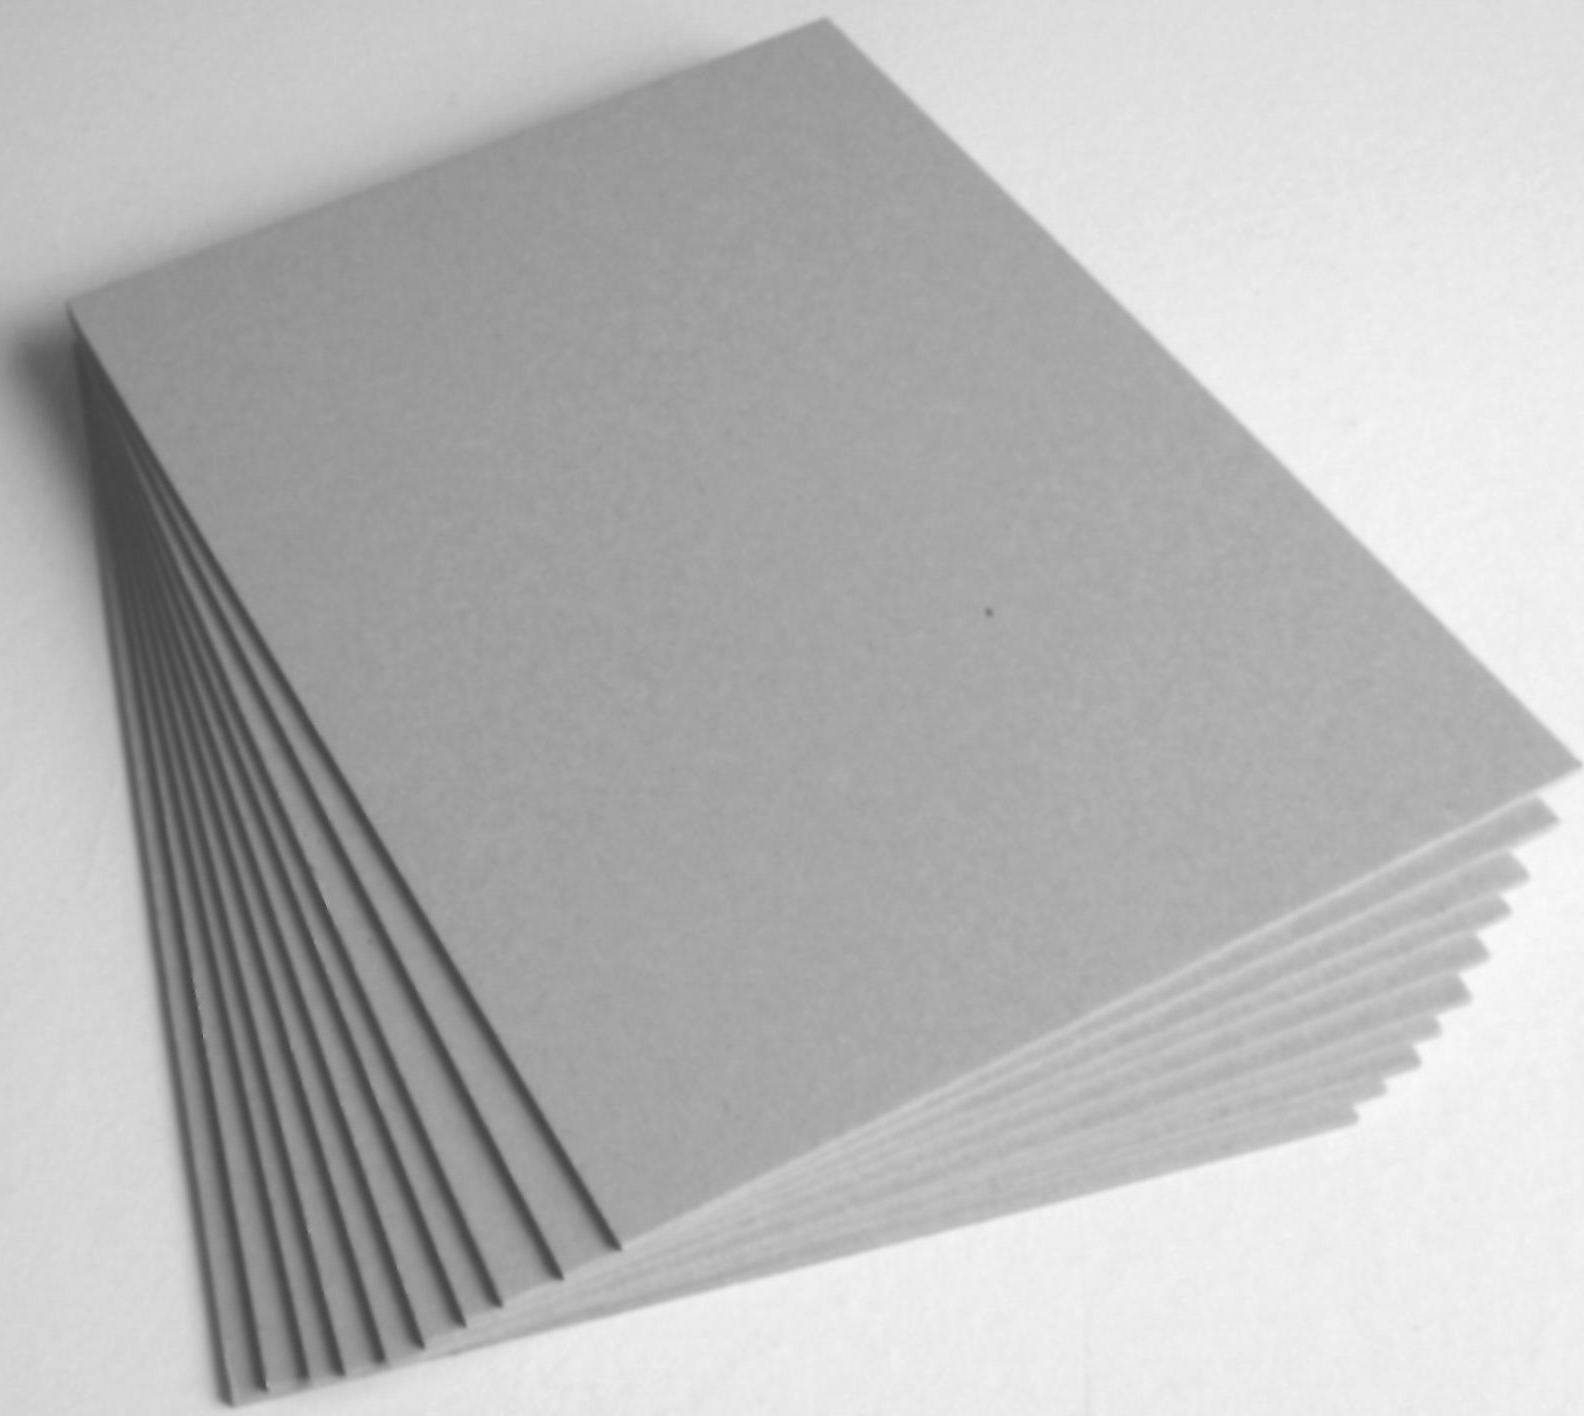 sinzoopaper hotselling Grey board for book cover